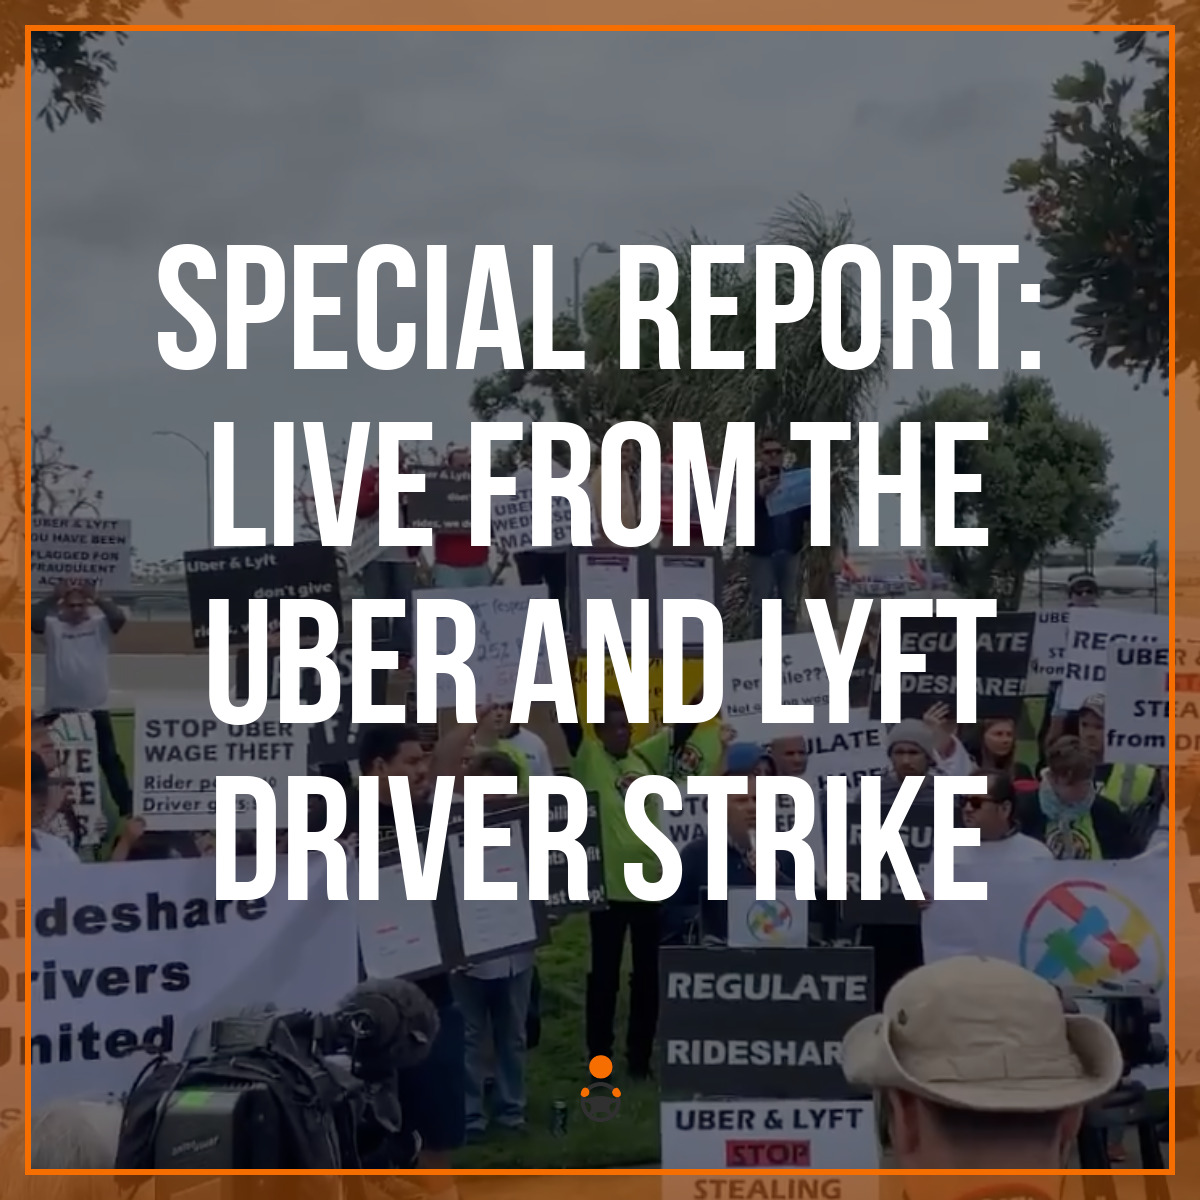 Special Report: Live From the Uber and Lyft Driver Strike